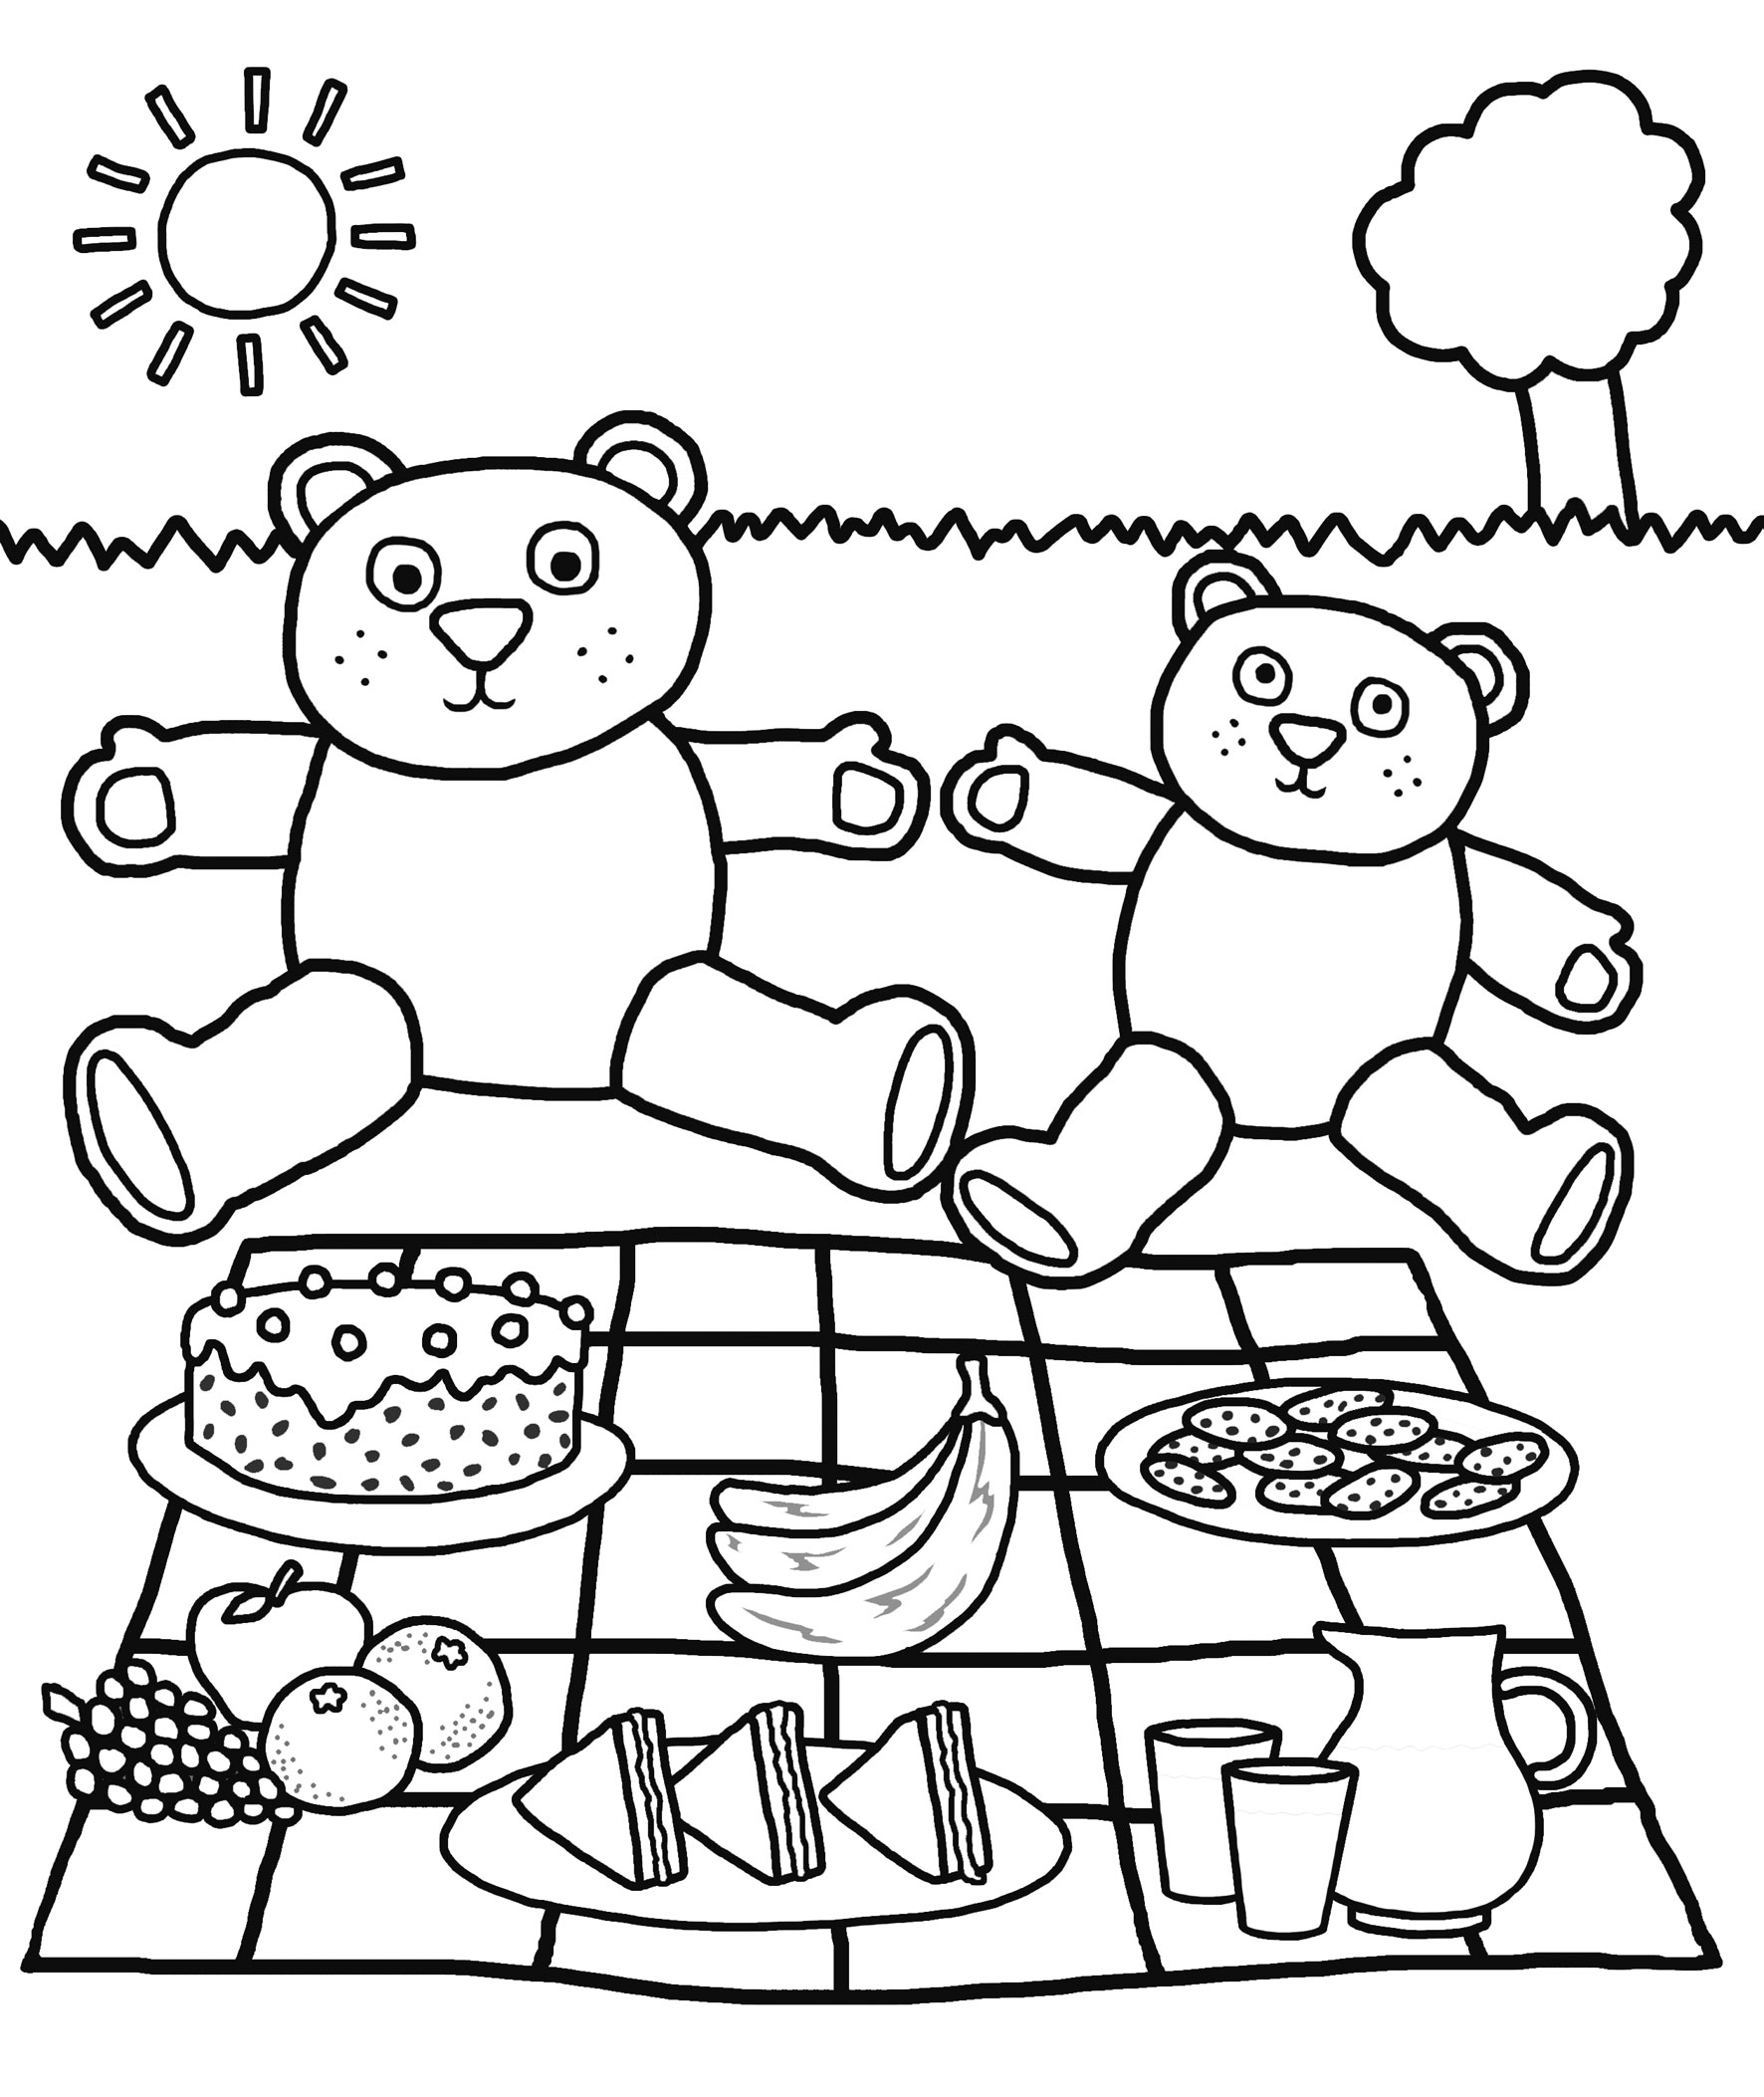 Kindergarten free colouring worksheets - Free Kindergarten Coloring Pages